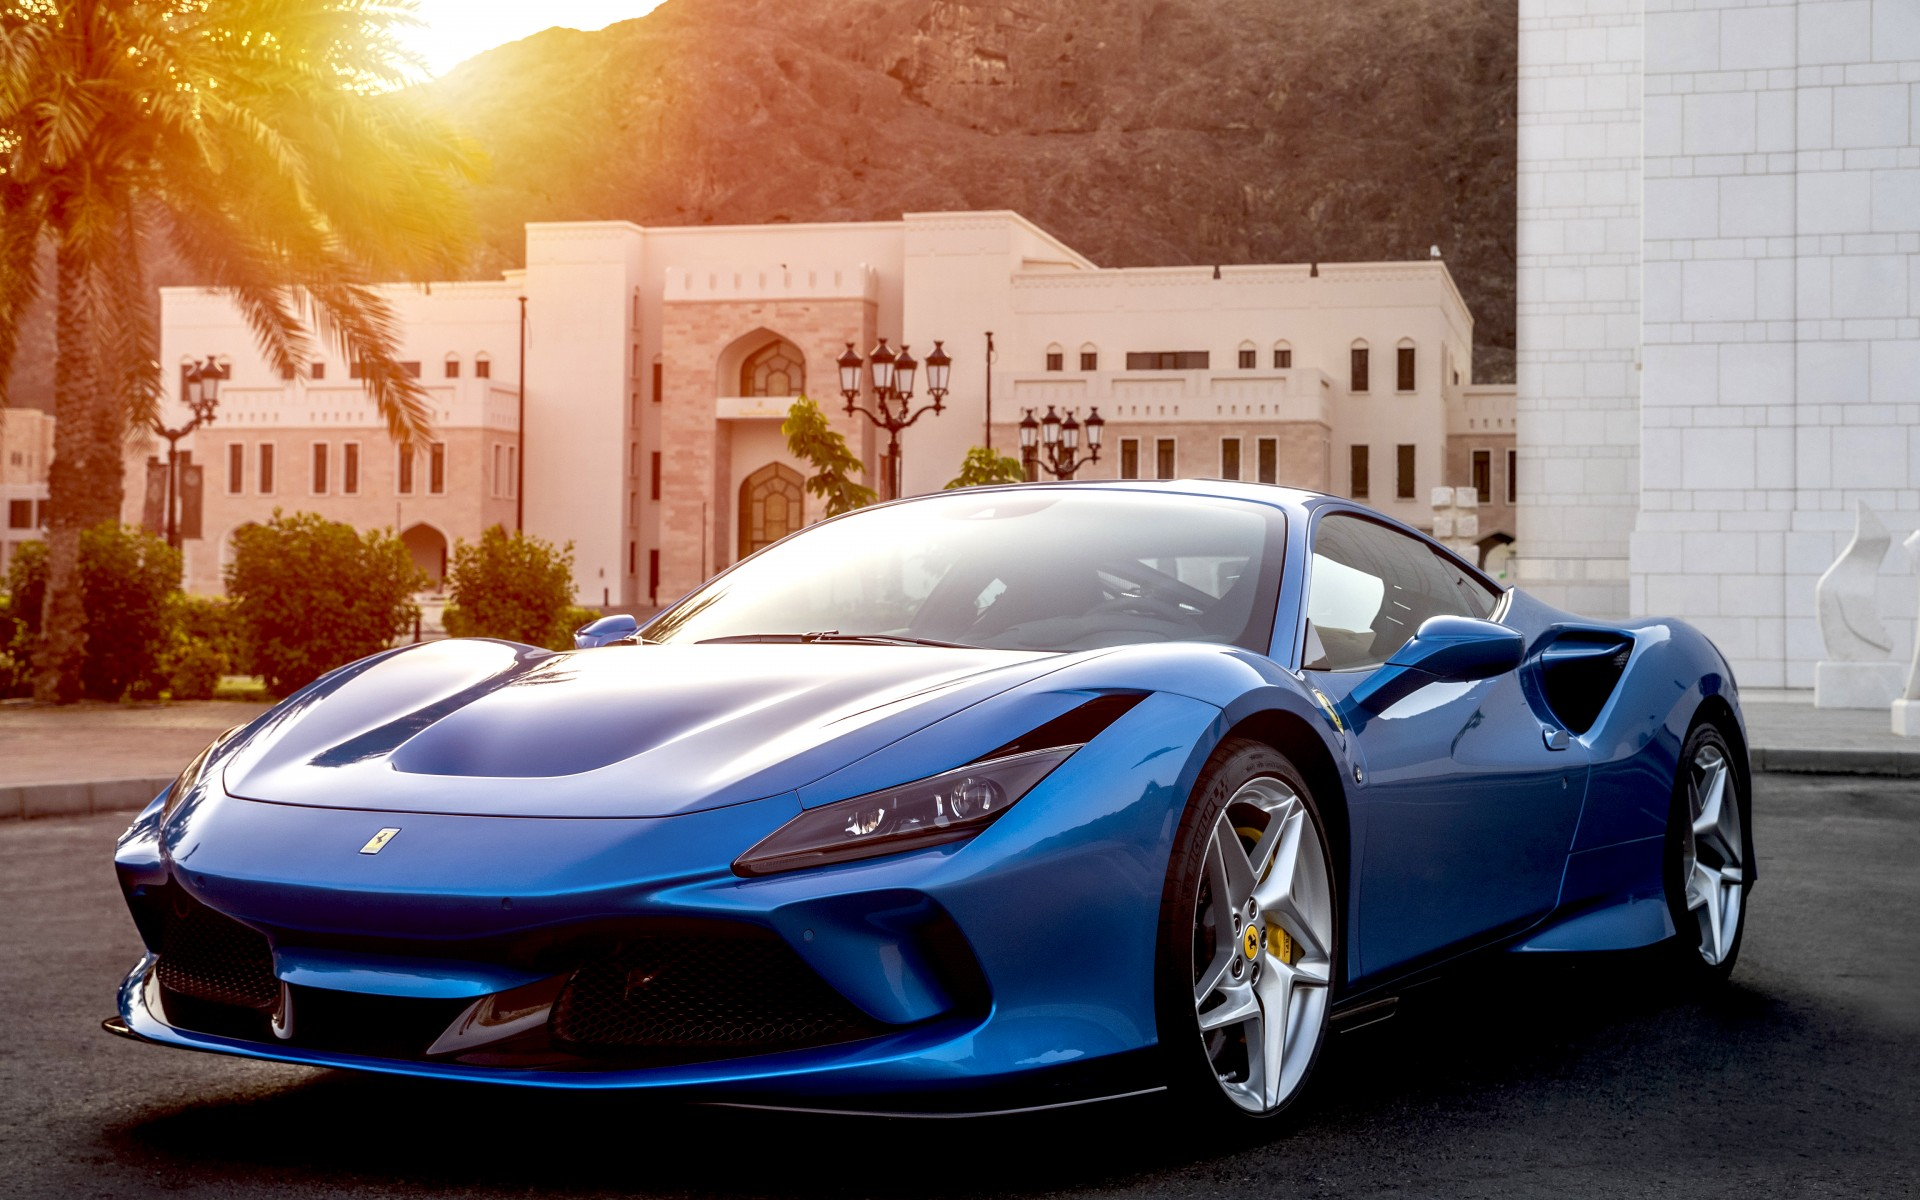 Cars Wallpapers: Ferrari F8 Tributo Car HD Wallpapers For Desktop